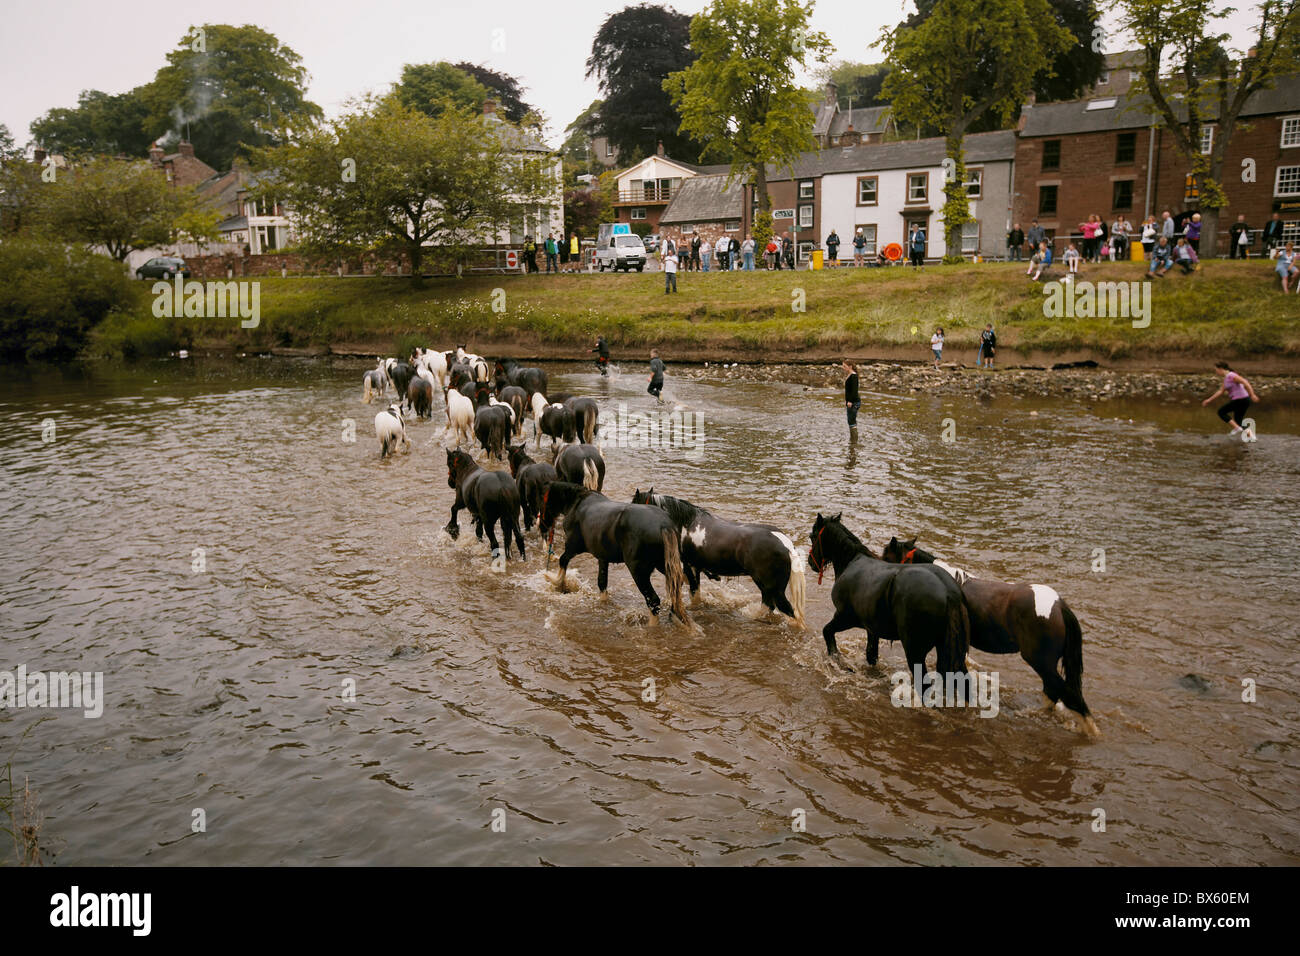 Gypsy travellers washing horses in the river Eden during the Appleby Horse Fair, Appleby-in-Westmorland, Cumbria, - Stock Image